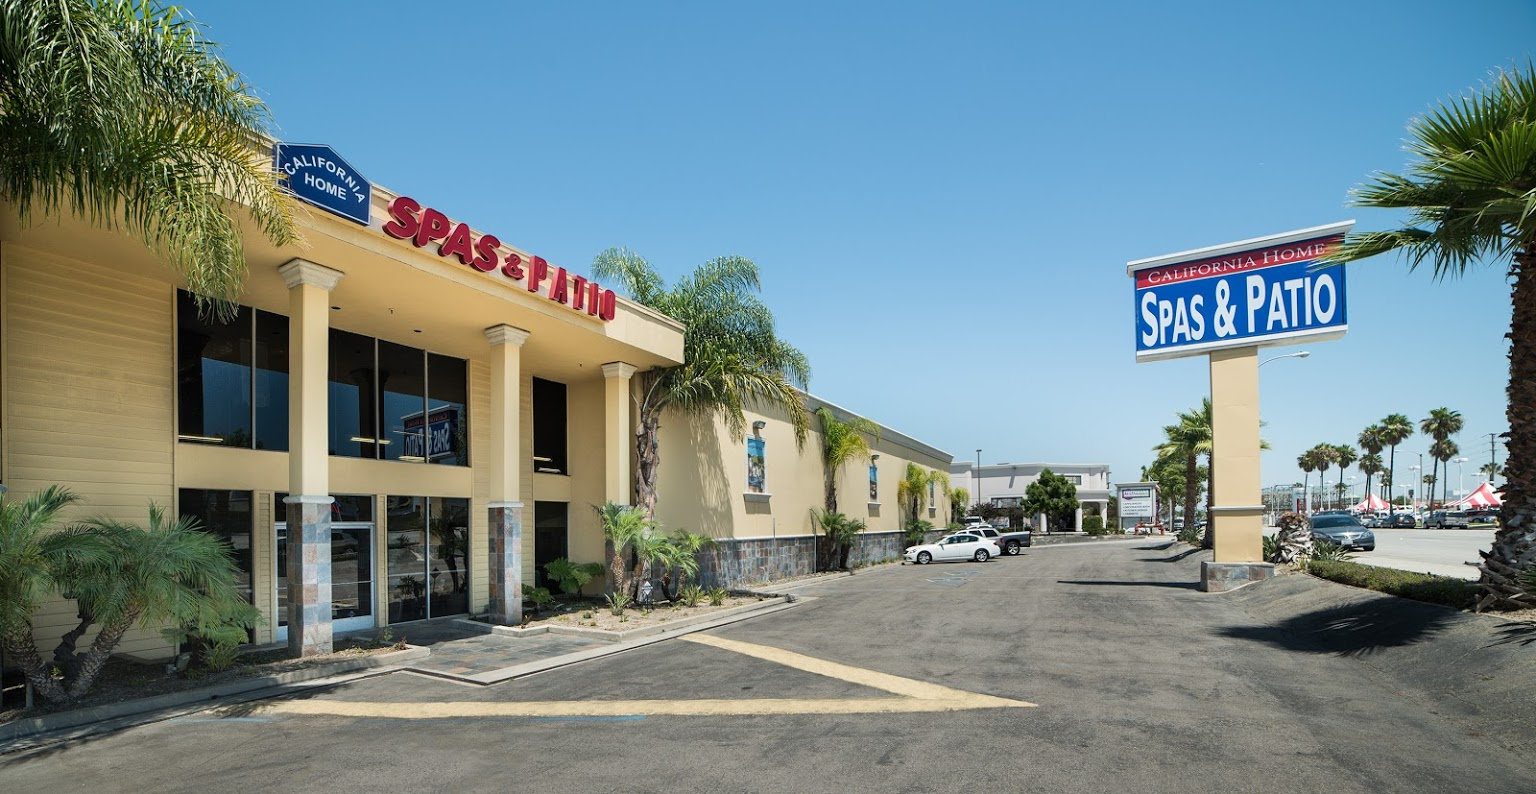 Store front of California Home Spas & Patio